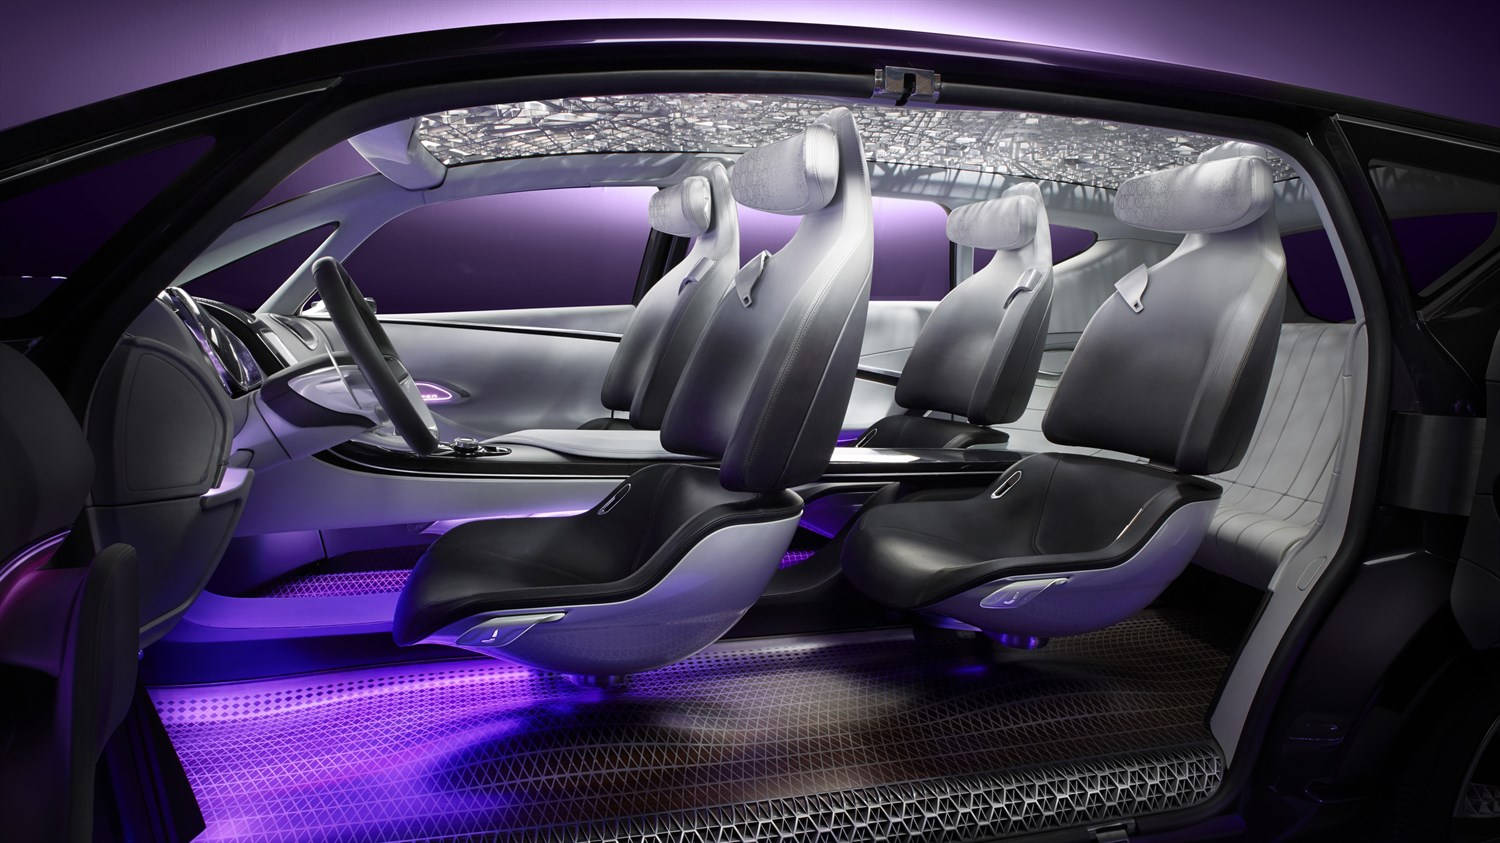 Renault INITIALE PARIS Concept - close-up of cabin as a whole